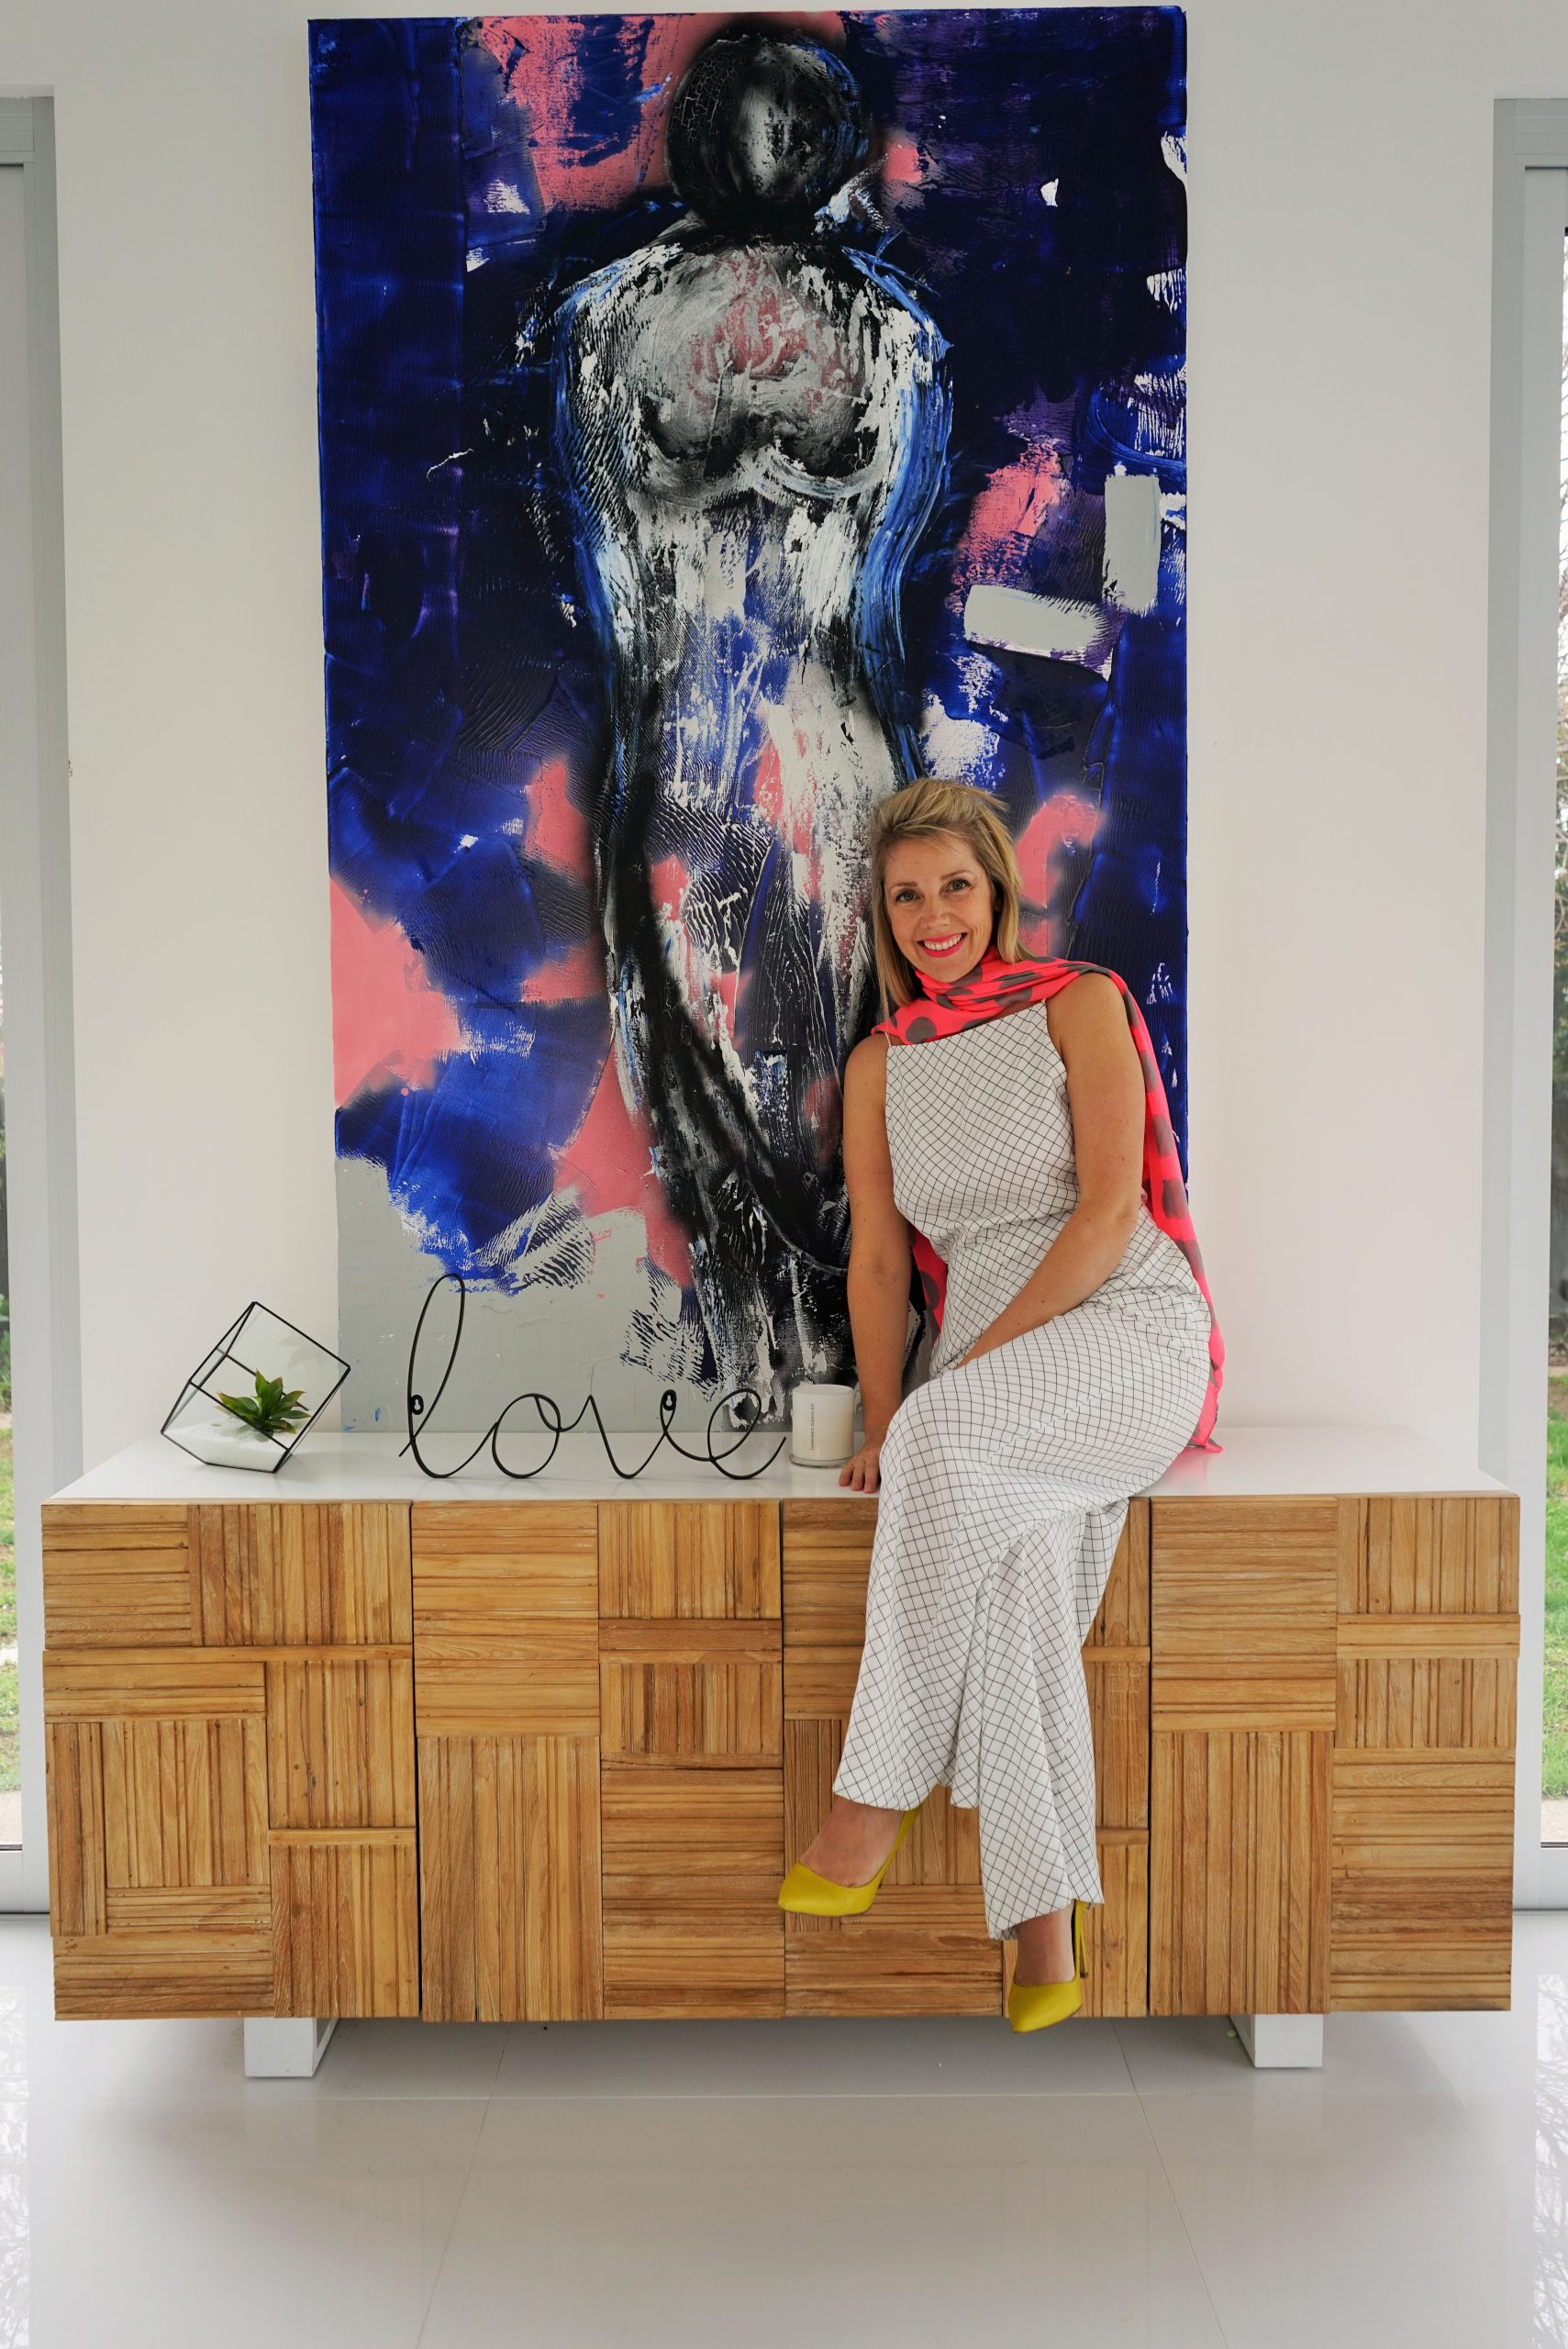 Sarah Jane Artist from Australia specialising in Modern Art and Abstract Art